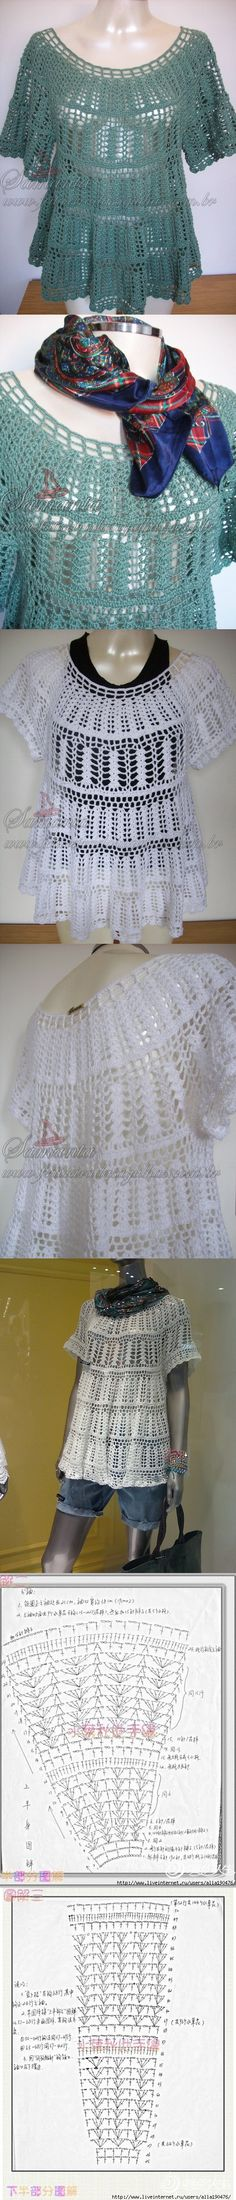 Crochet tunic! perfect! (diagrams)